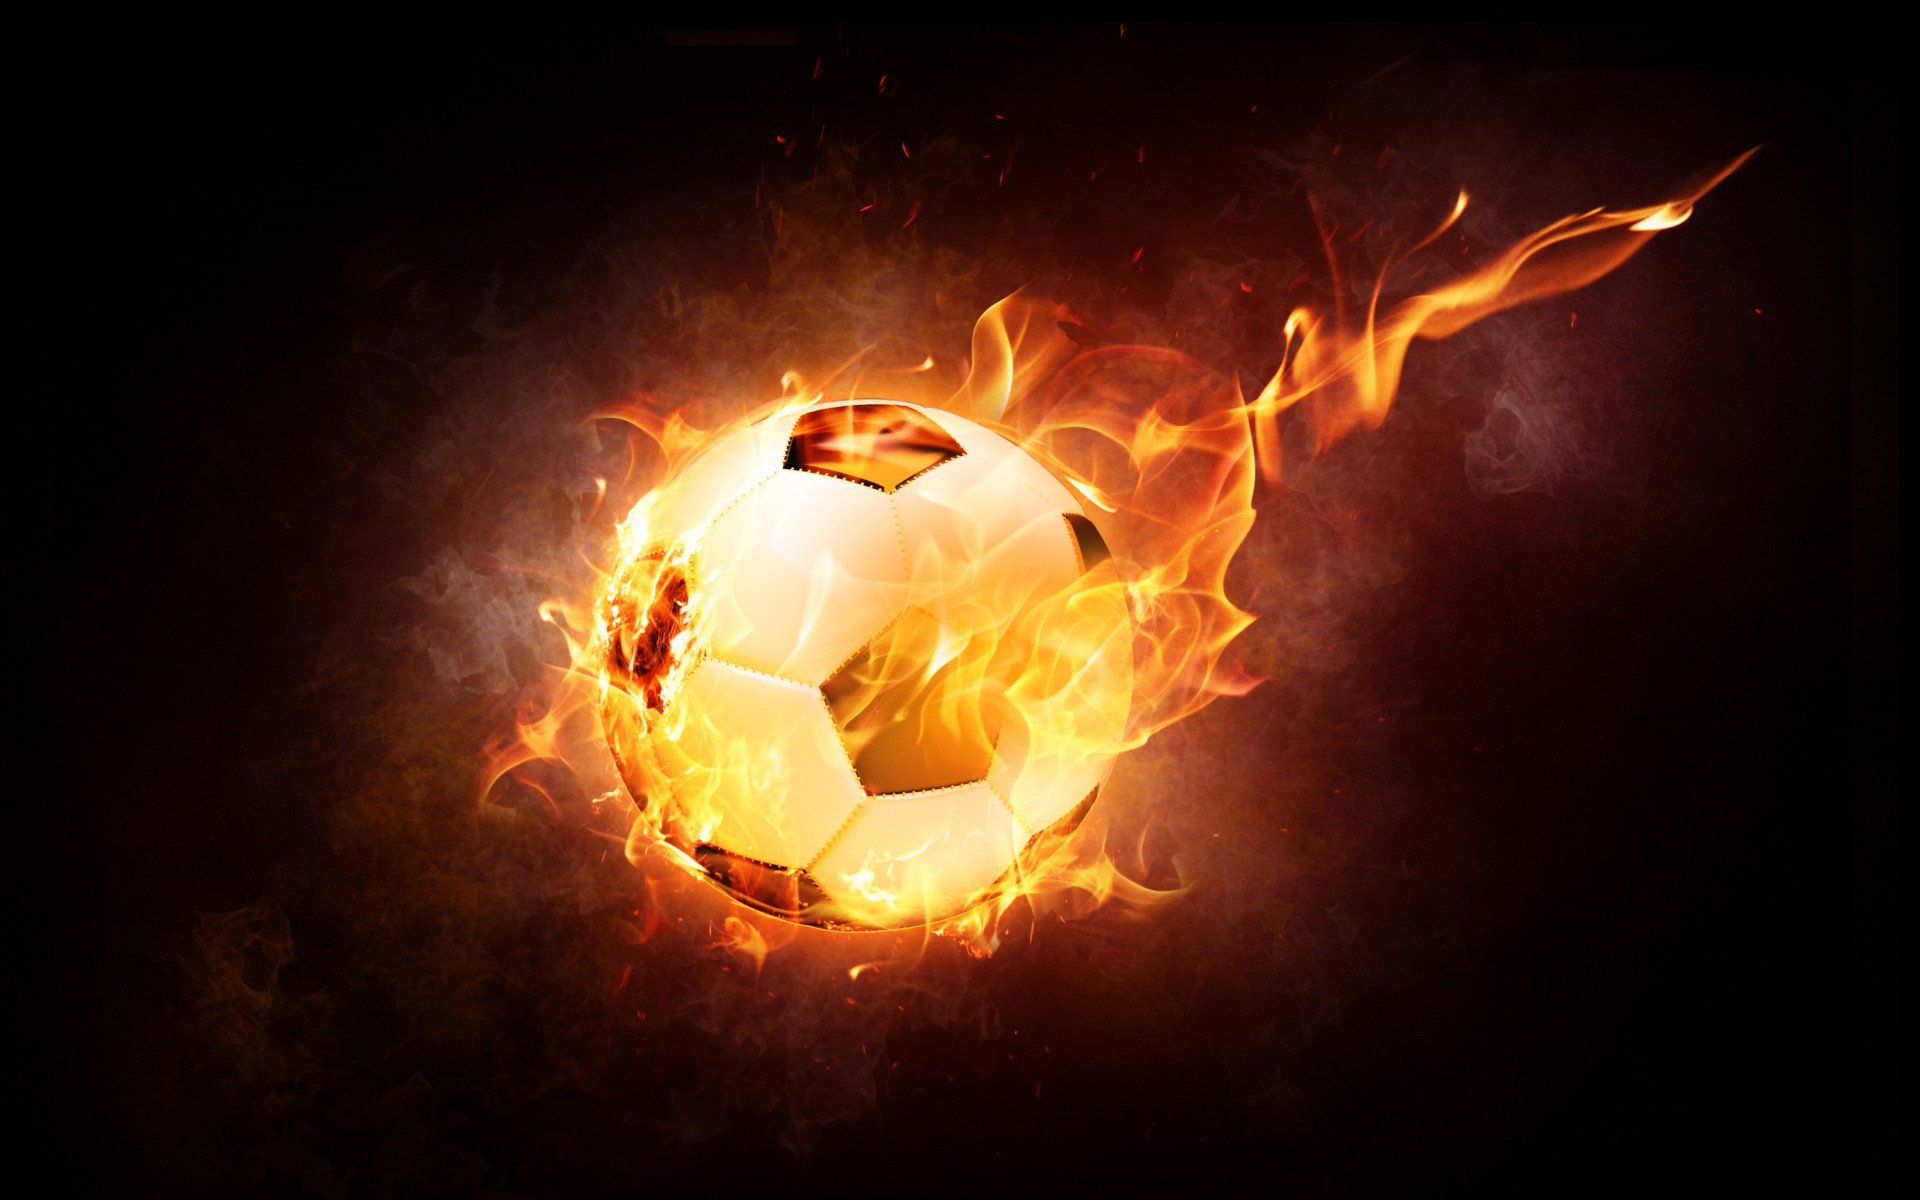 The football ball is on fire wallpaper 1920x1200